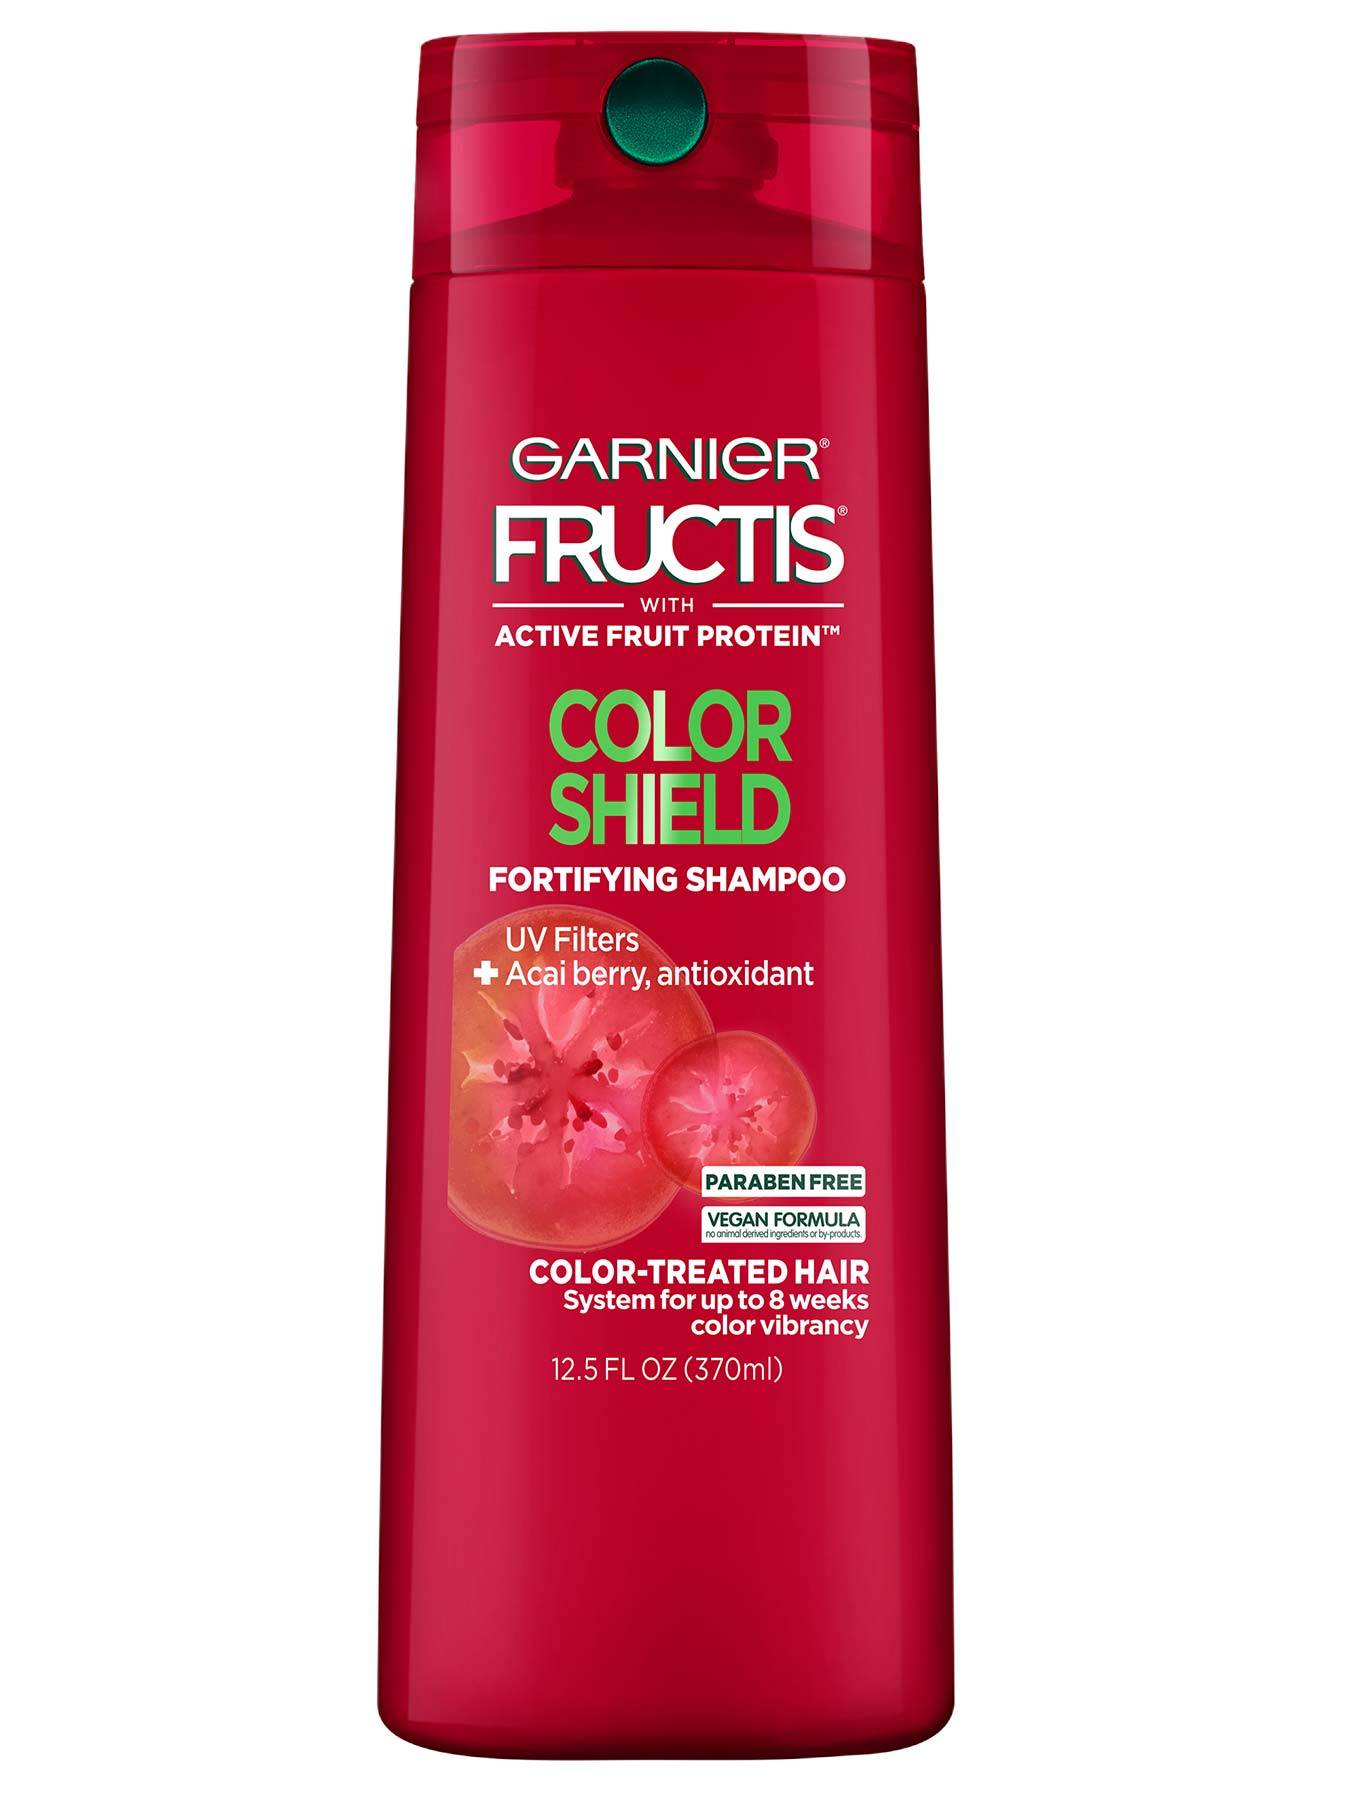 Front view of Color Shield Shampoo for Color-treated Hair.